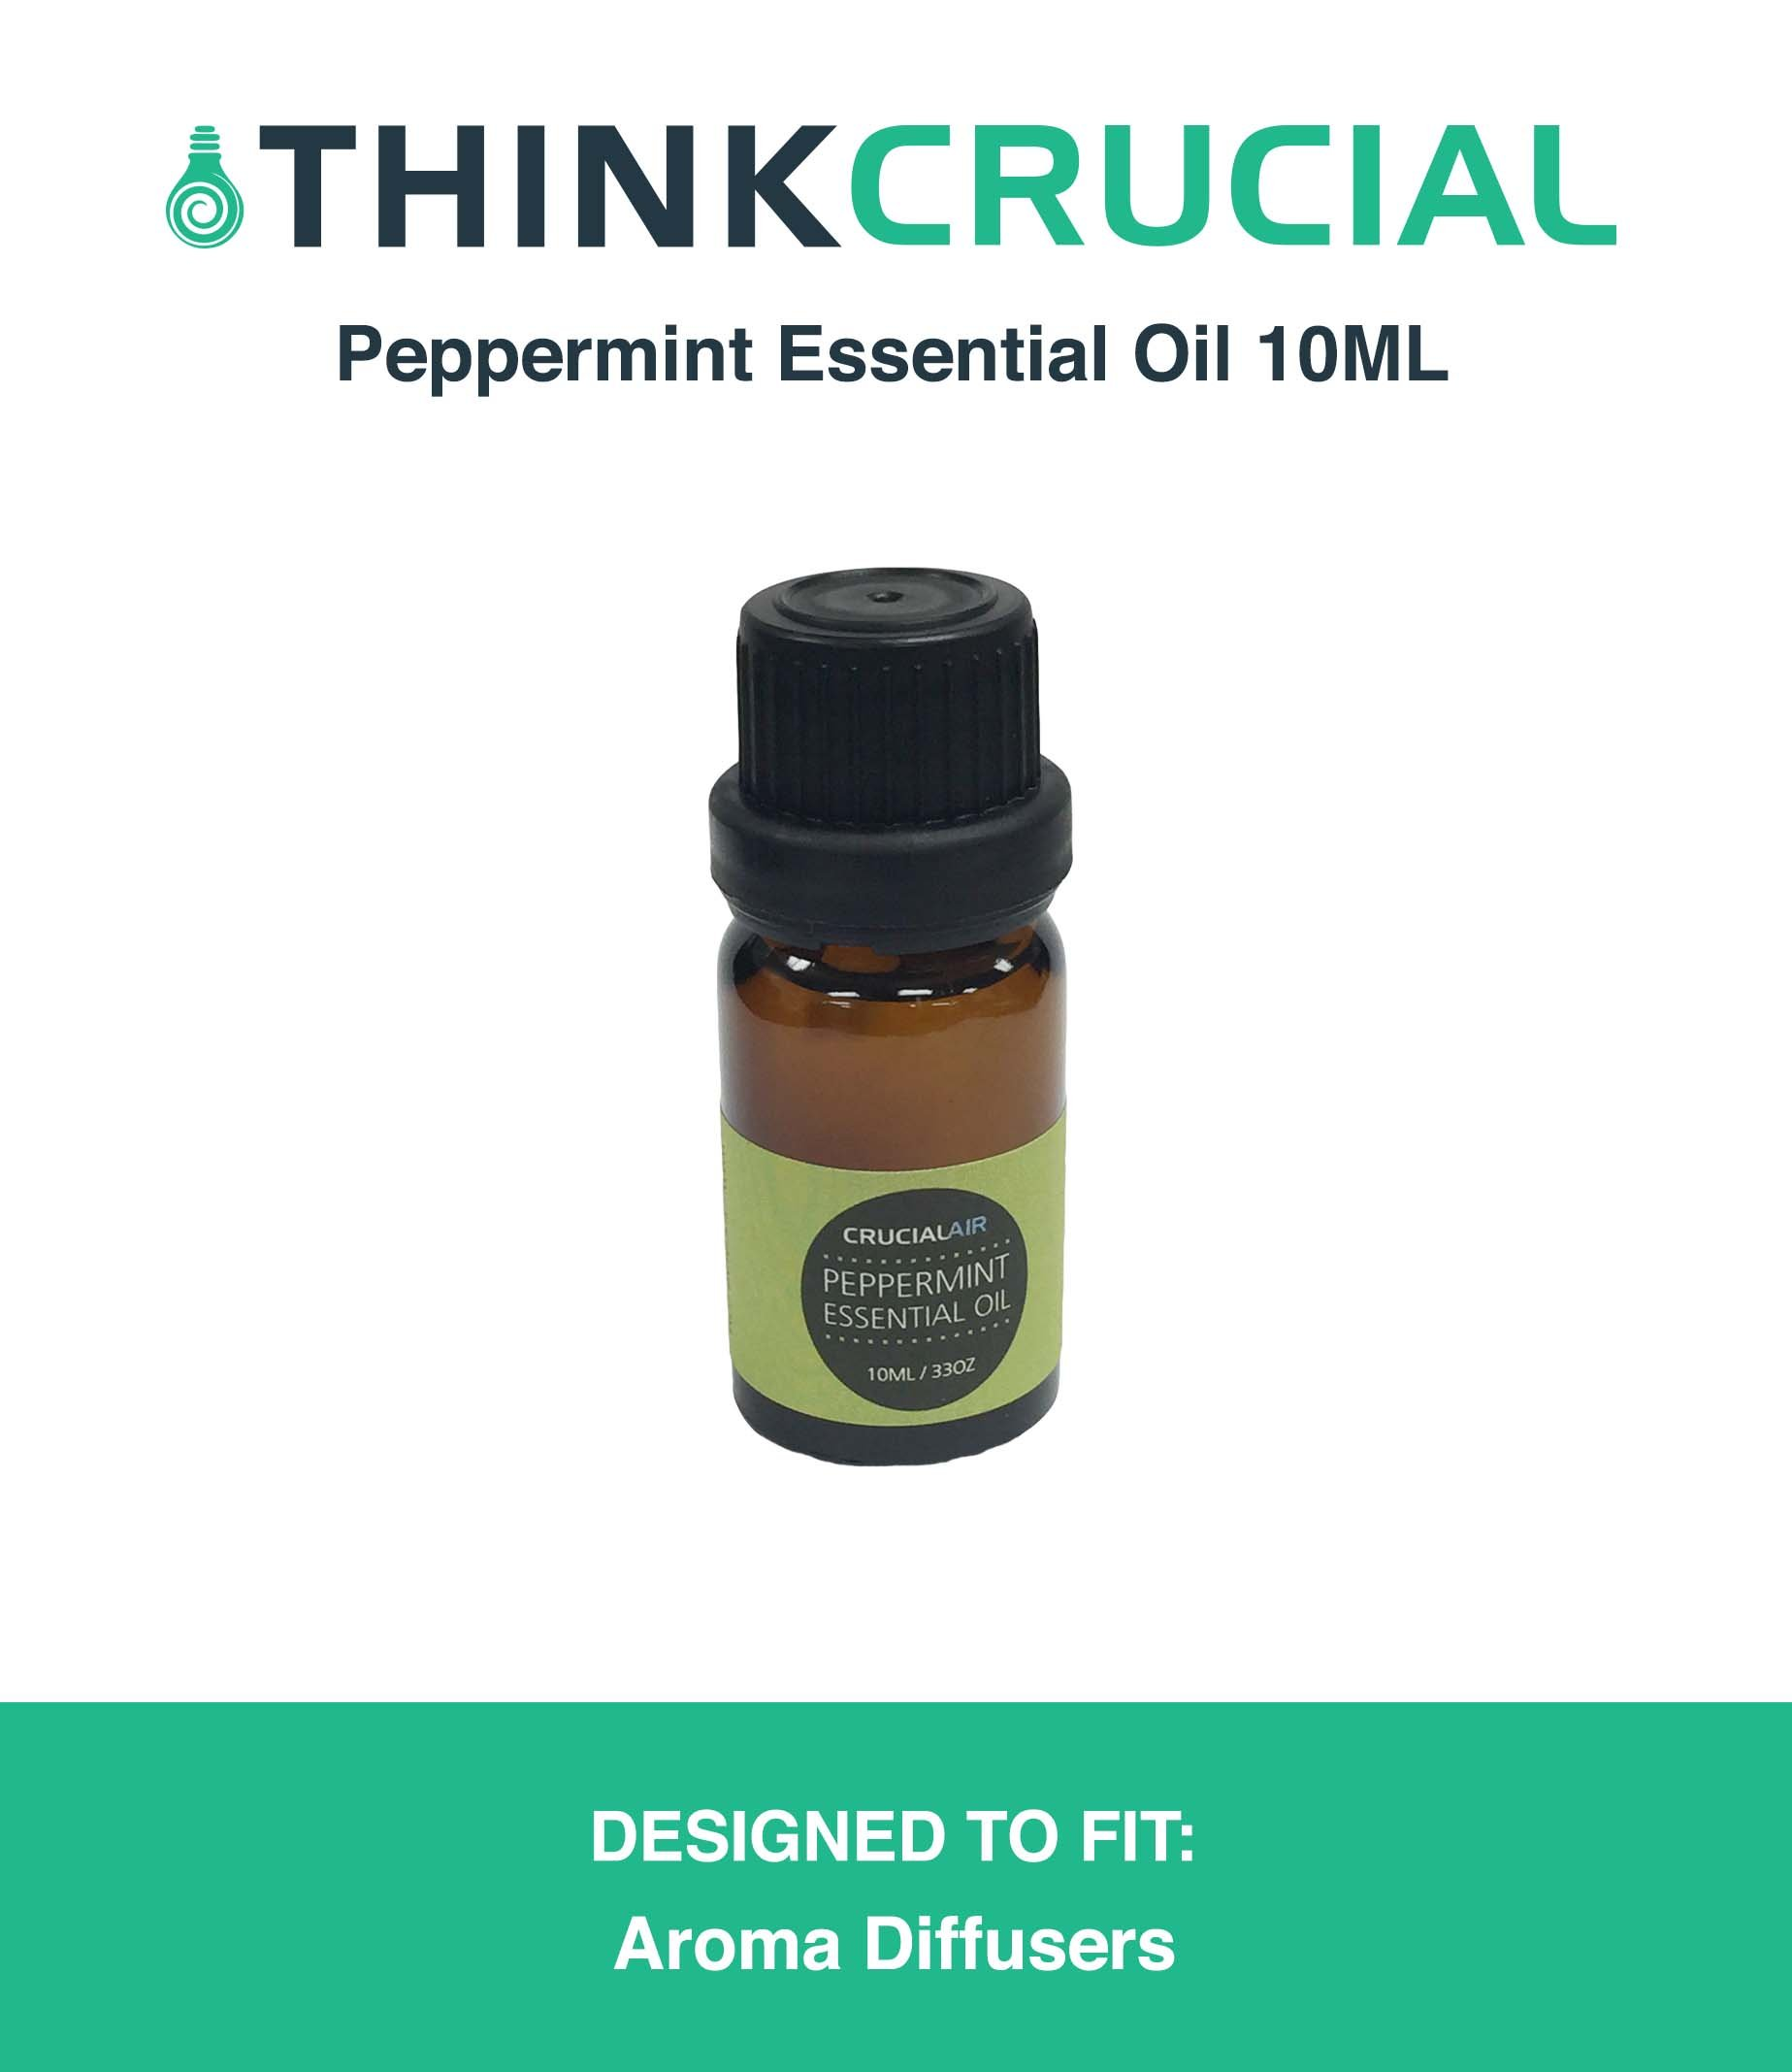 Think Crucial Sweet Peppermint Infused Essential Oil for Aromatherapy, 10 ML Bottle, Therapeutic Grade, Wellness Spa Mist Aromatherapy by Think Crucial